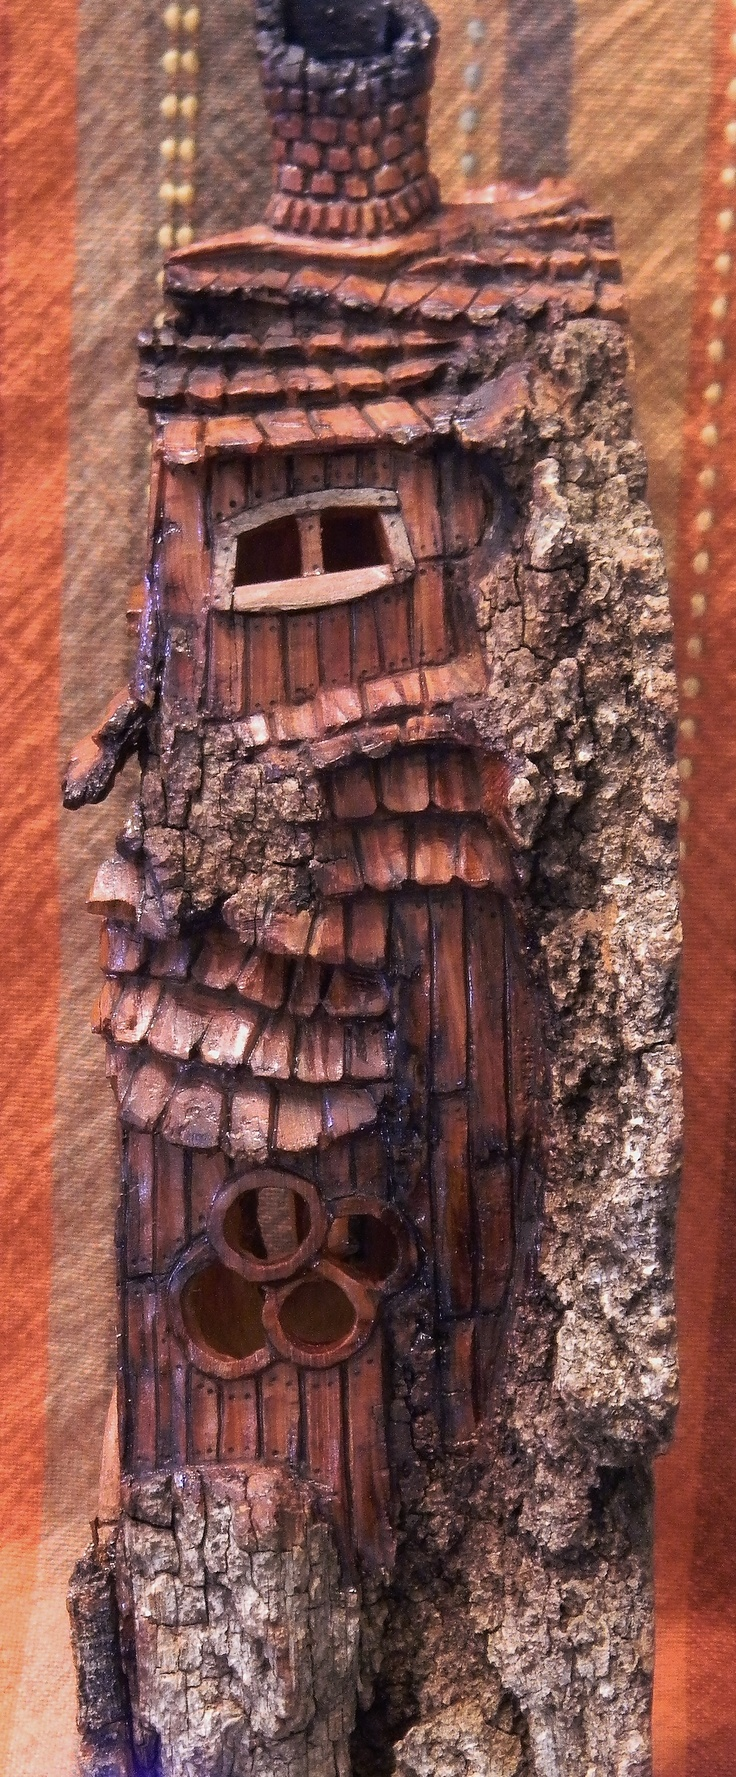 83 Best Images About Cottonwood Bark Carvings On Pinterest